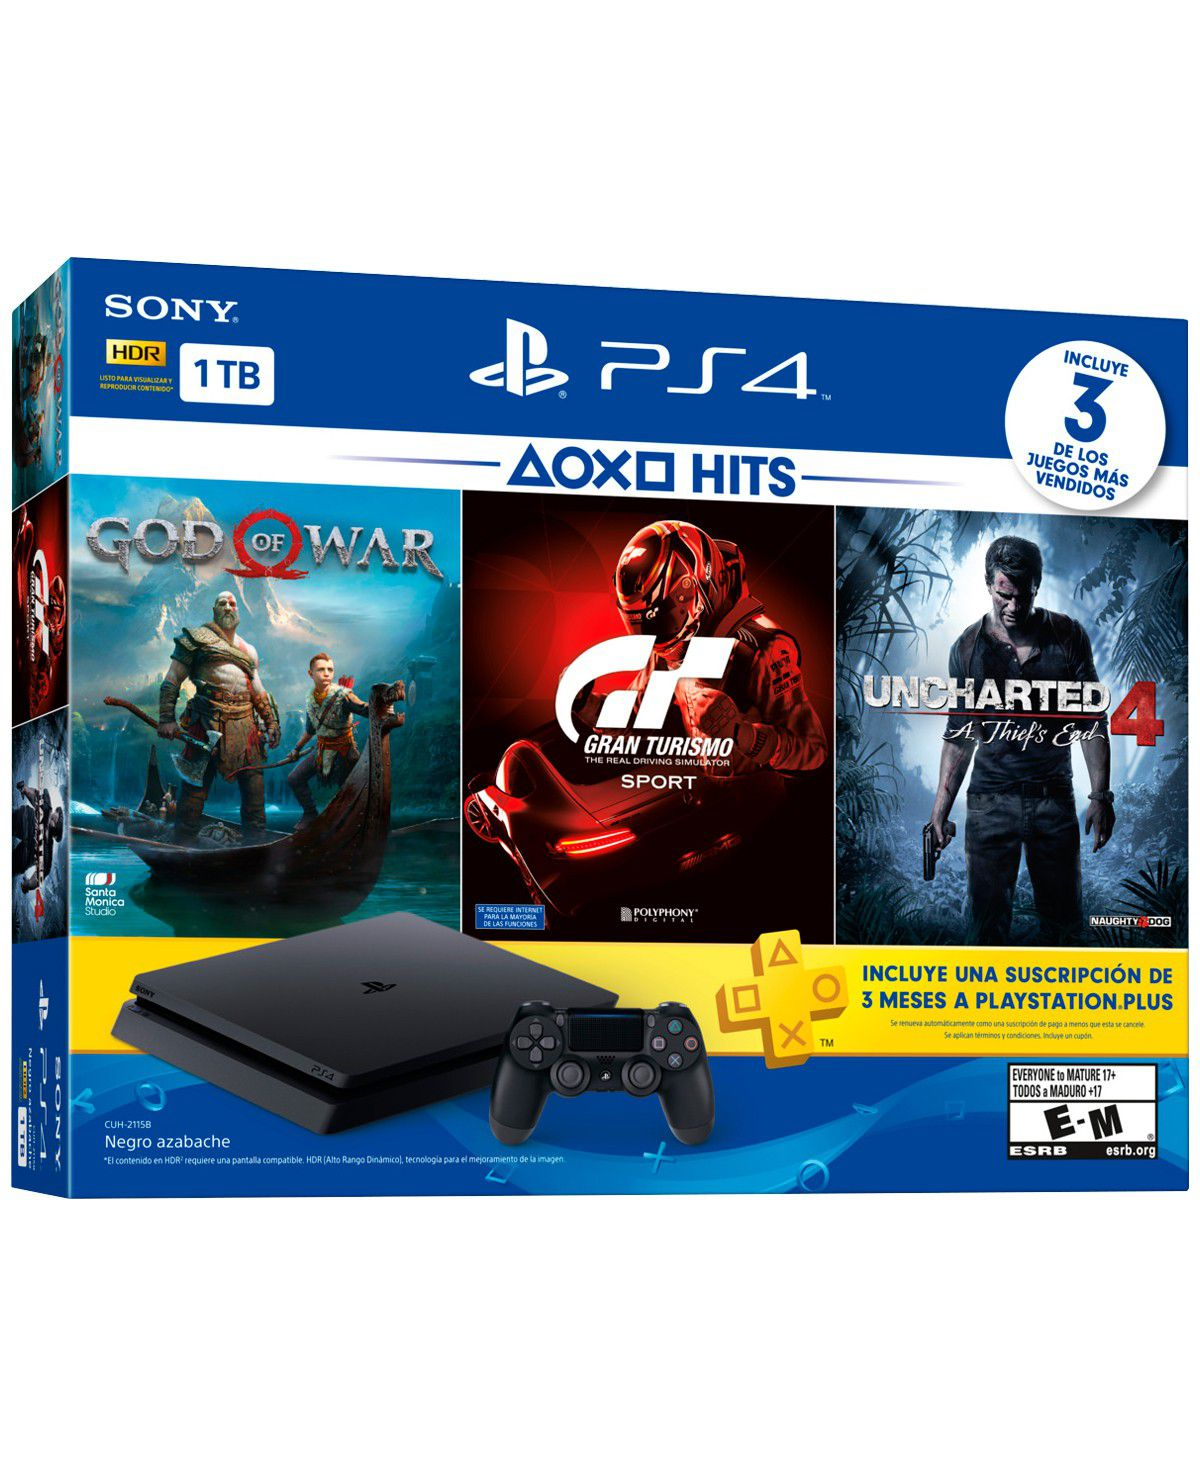 Sony PlayStation 4 Slim 1TB + 3 Jogos (God of war, Gran turismo, Uncharted 4)